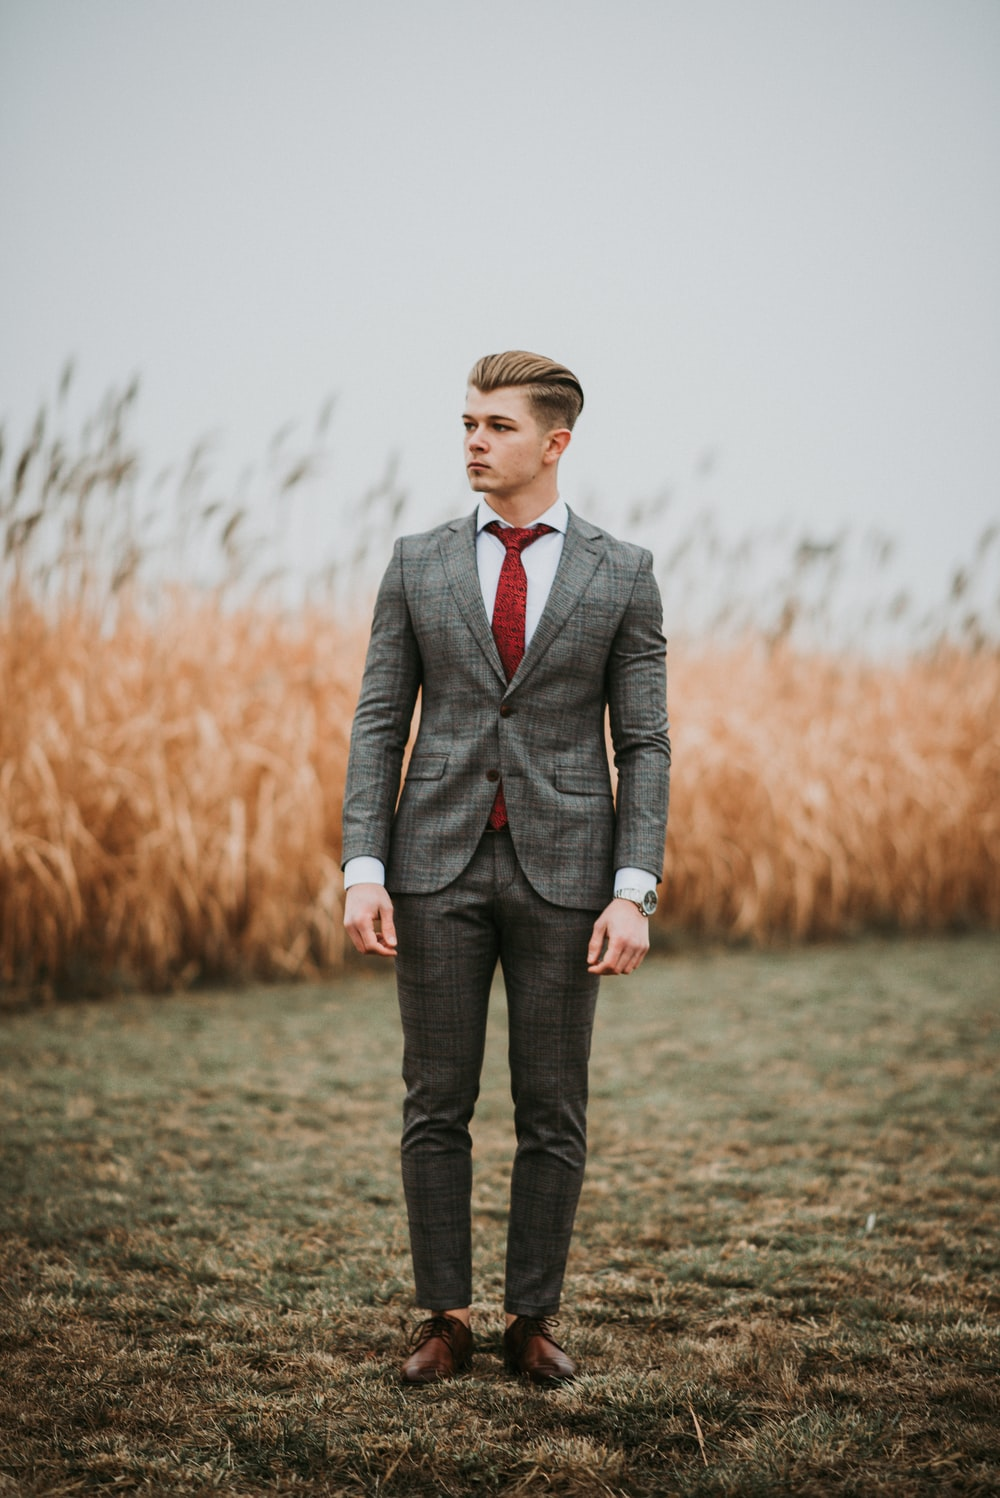 man standing near brown grass field on selective focus photography